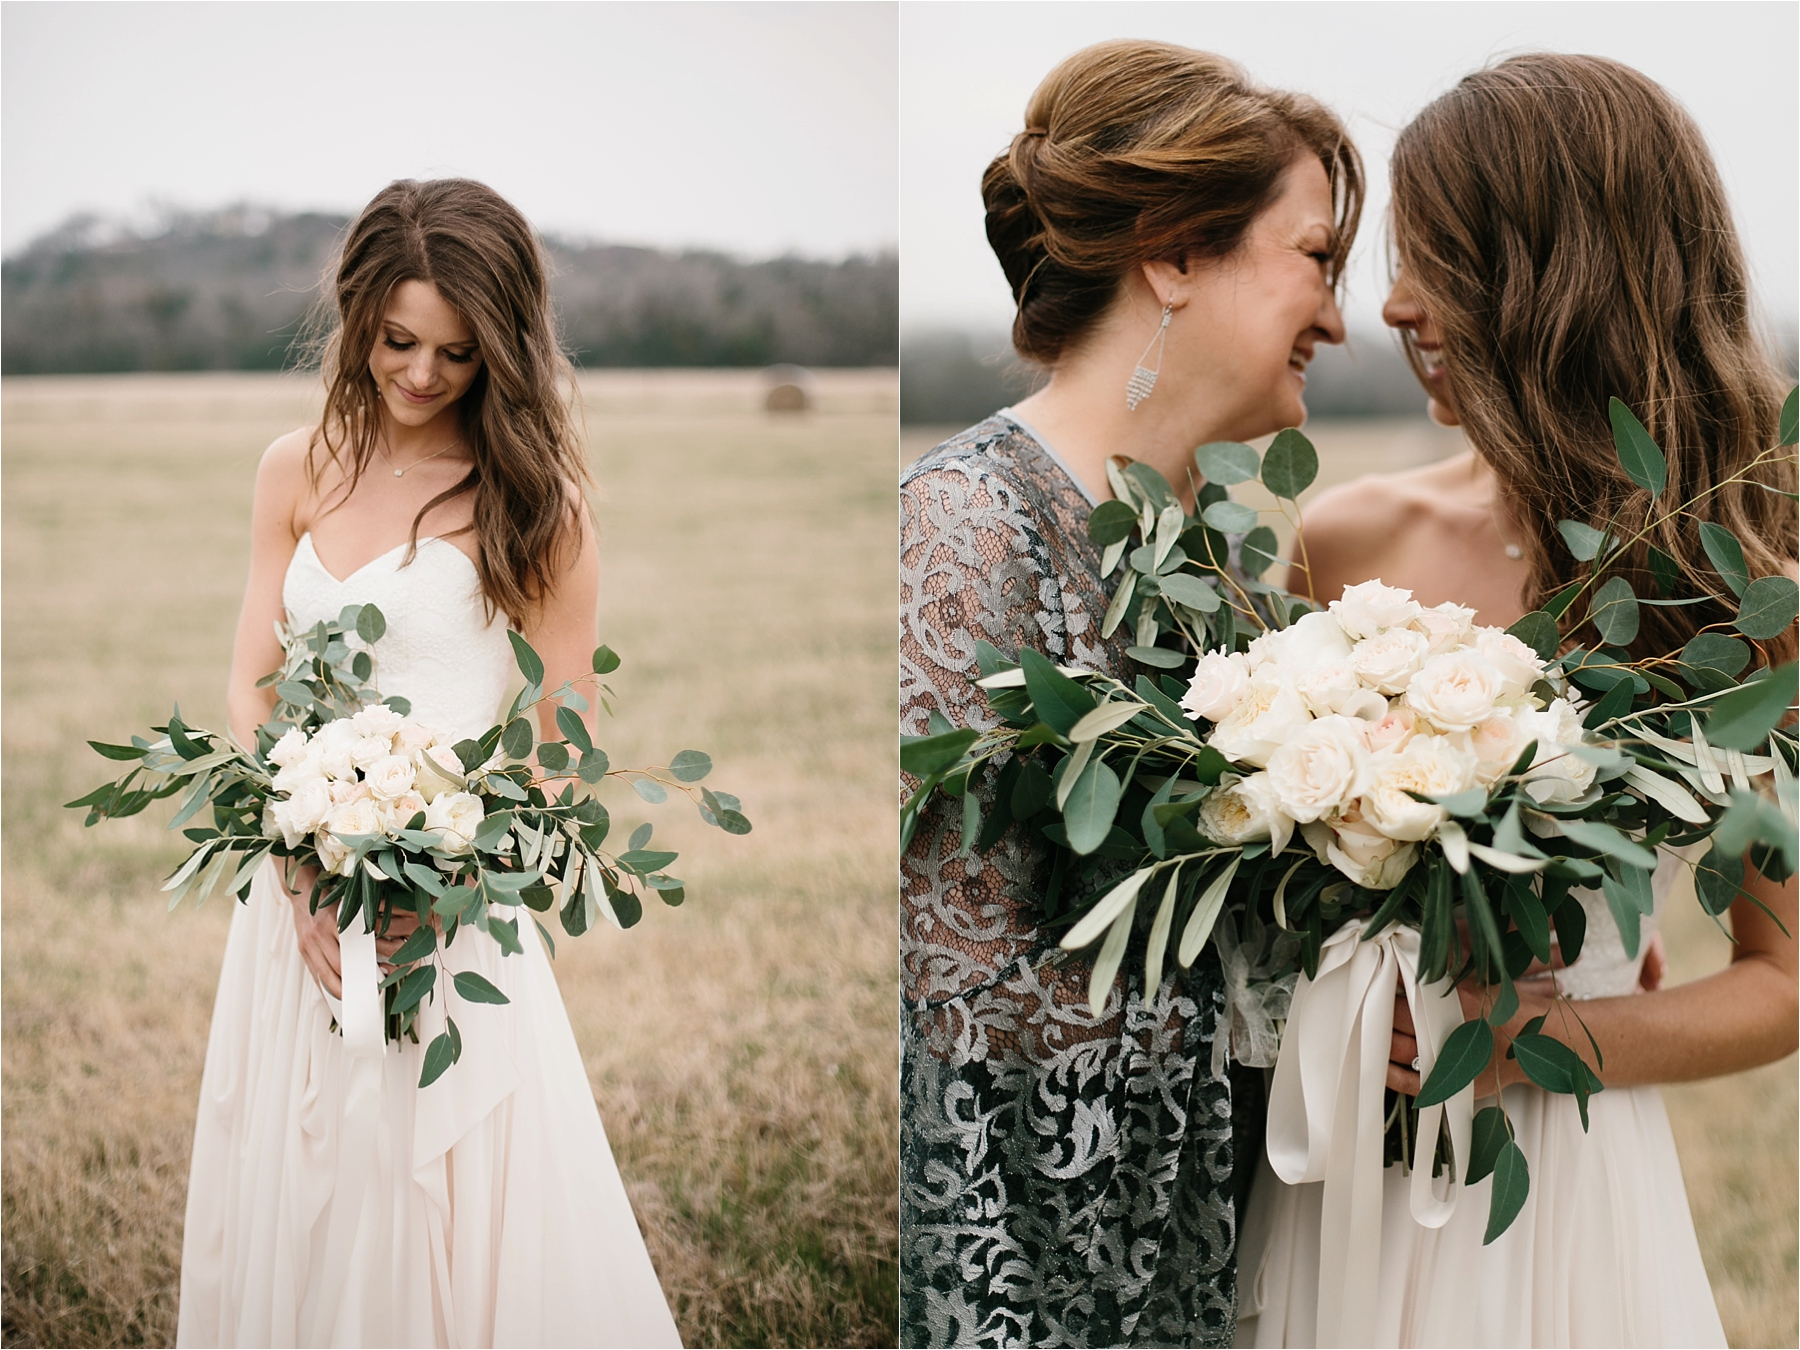 Lauren + Matt __ an intimate, emotional, blush pink, navy blue, and greenery toned wedding accents at the Brooks at Weatherford by North Texas Wedding Photographer Rachel Meagan Photography084